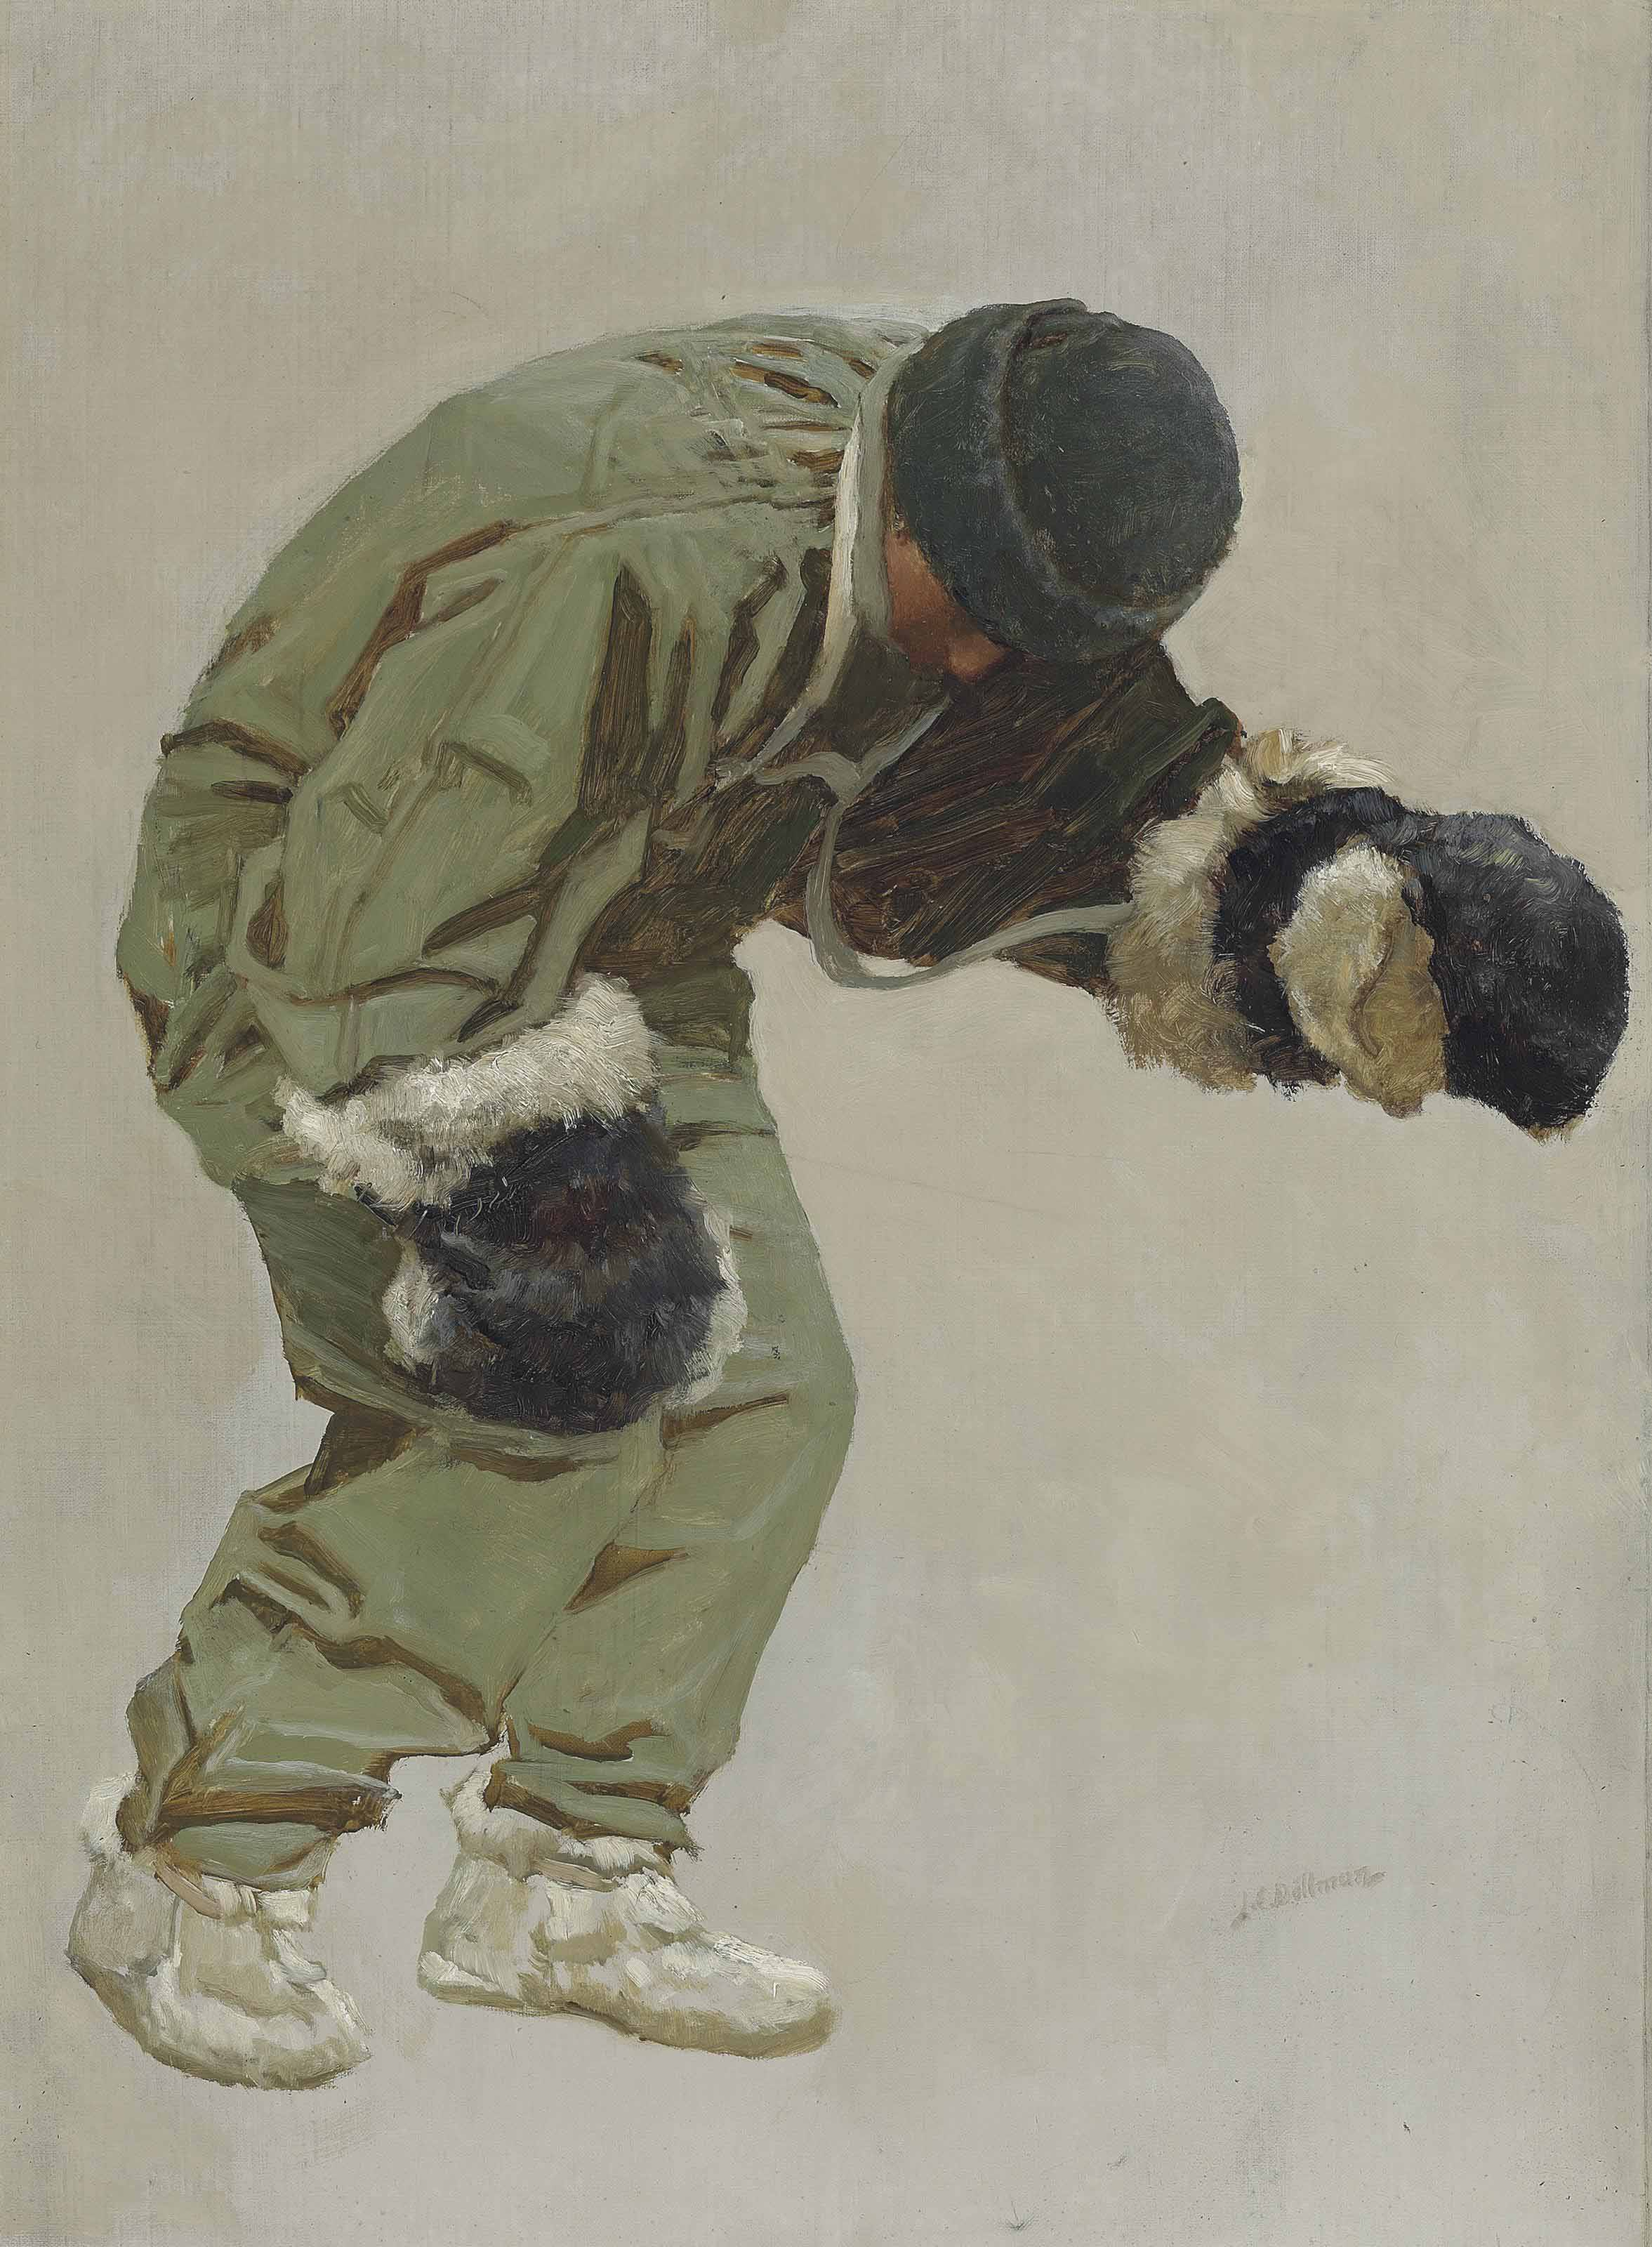 'A Very Gallant Gentleman' (Captain L.E.G. Oates walking out to his death in the blizzard, on Captain Scott's return journey from the South Pole, March 1912)